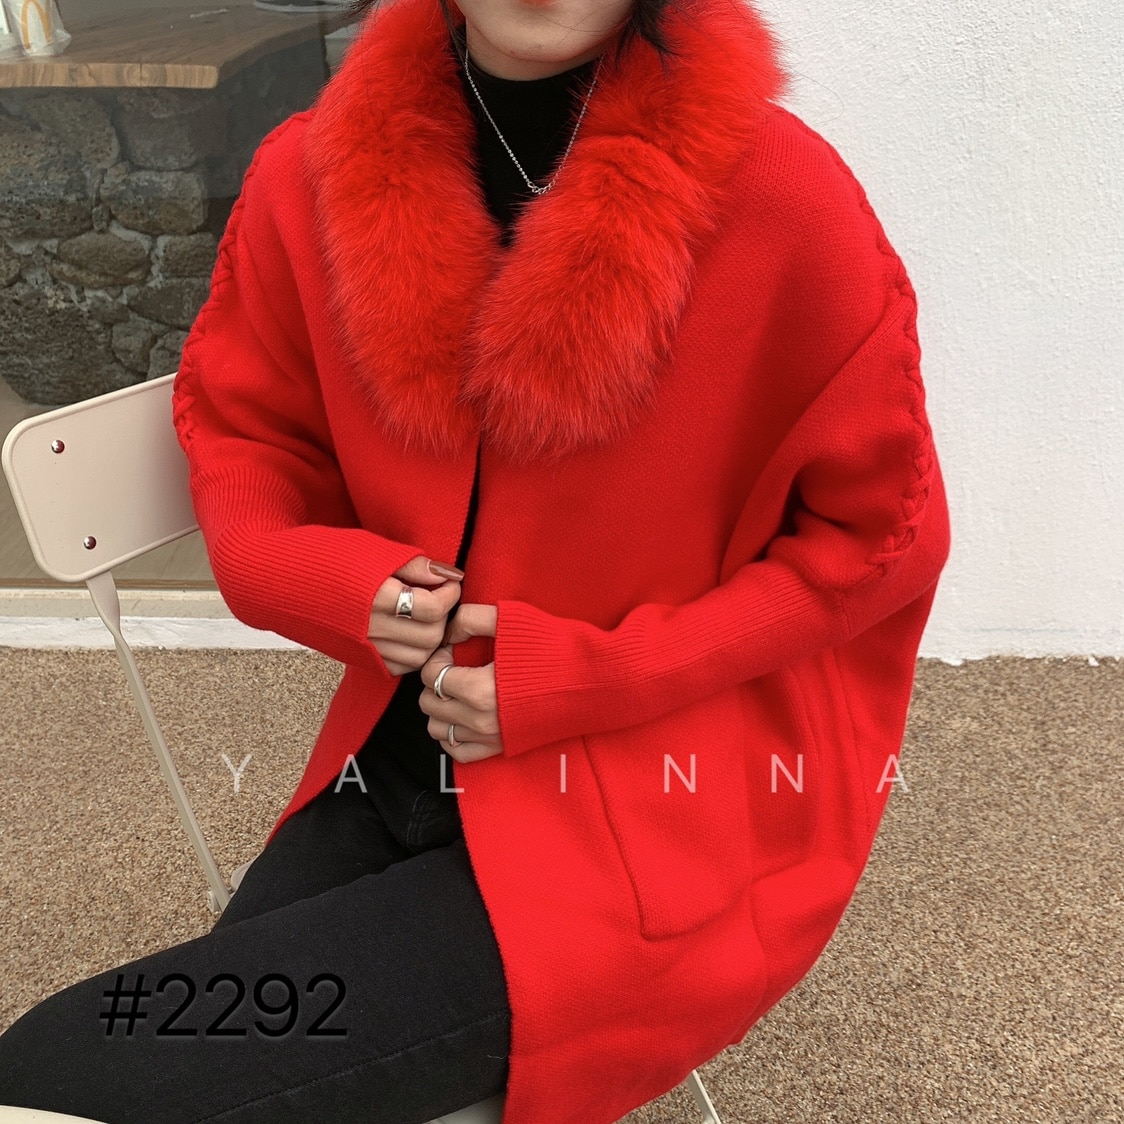 2020 new woman sweater fashion fox fur collar bat sleeve knitted sweater cardigan loose large size outer sweater enlarge